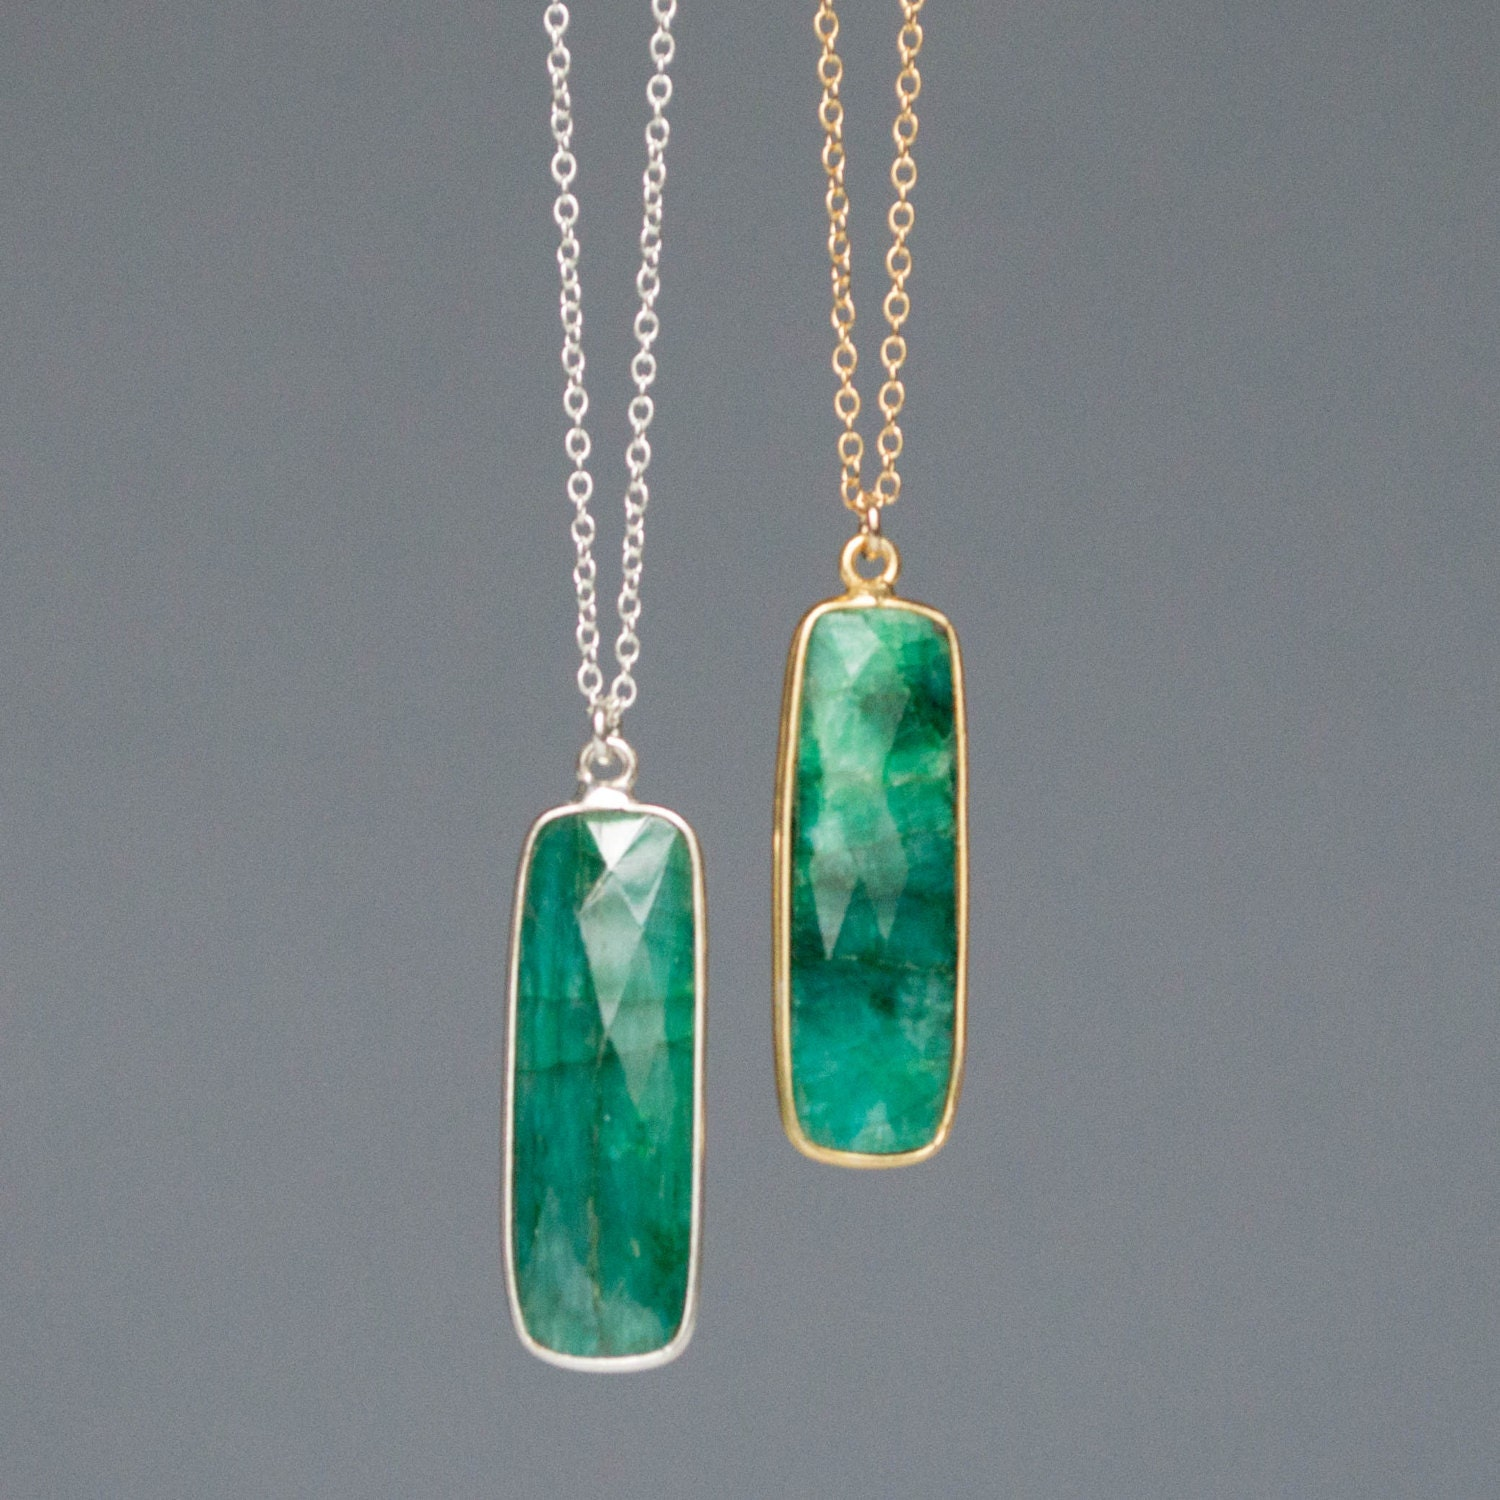 Emerald Necklace Gold Emerald Green Necklace Emerald Pendant